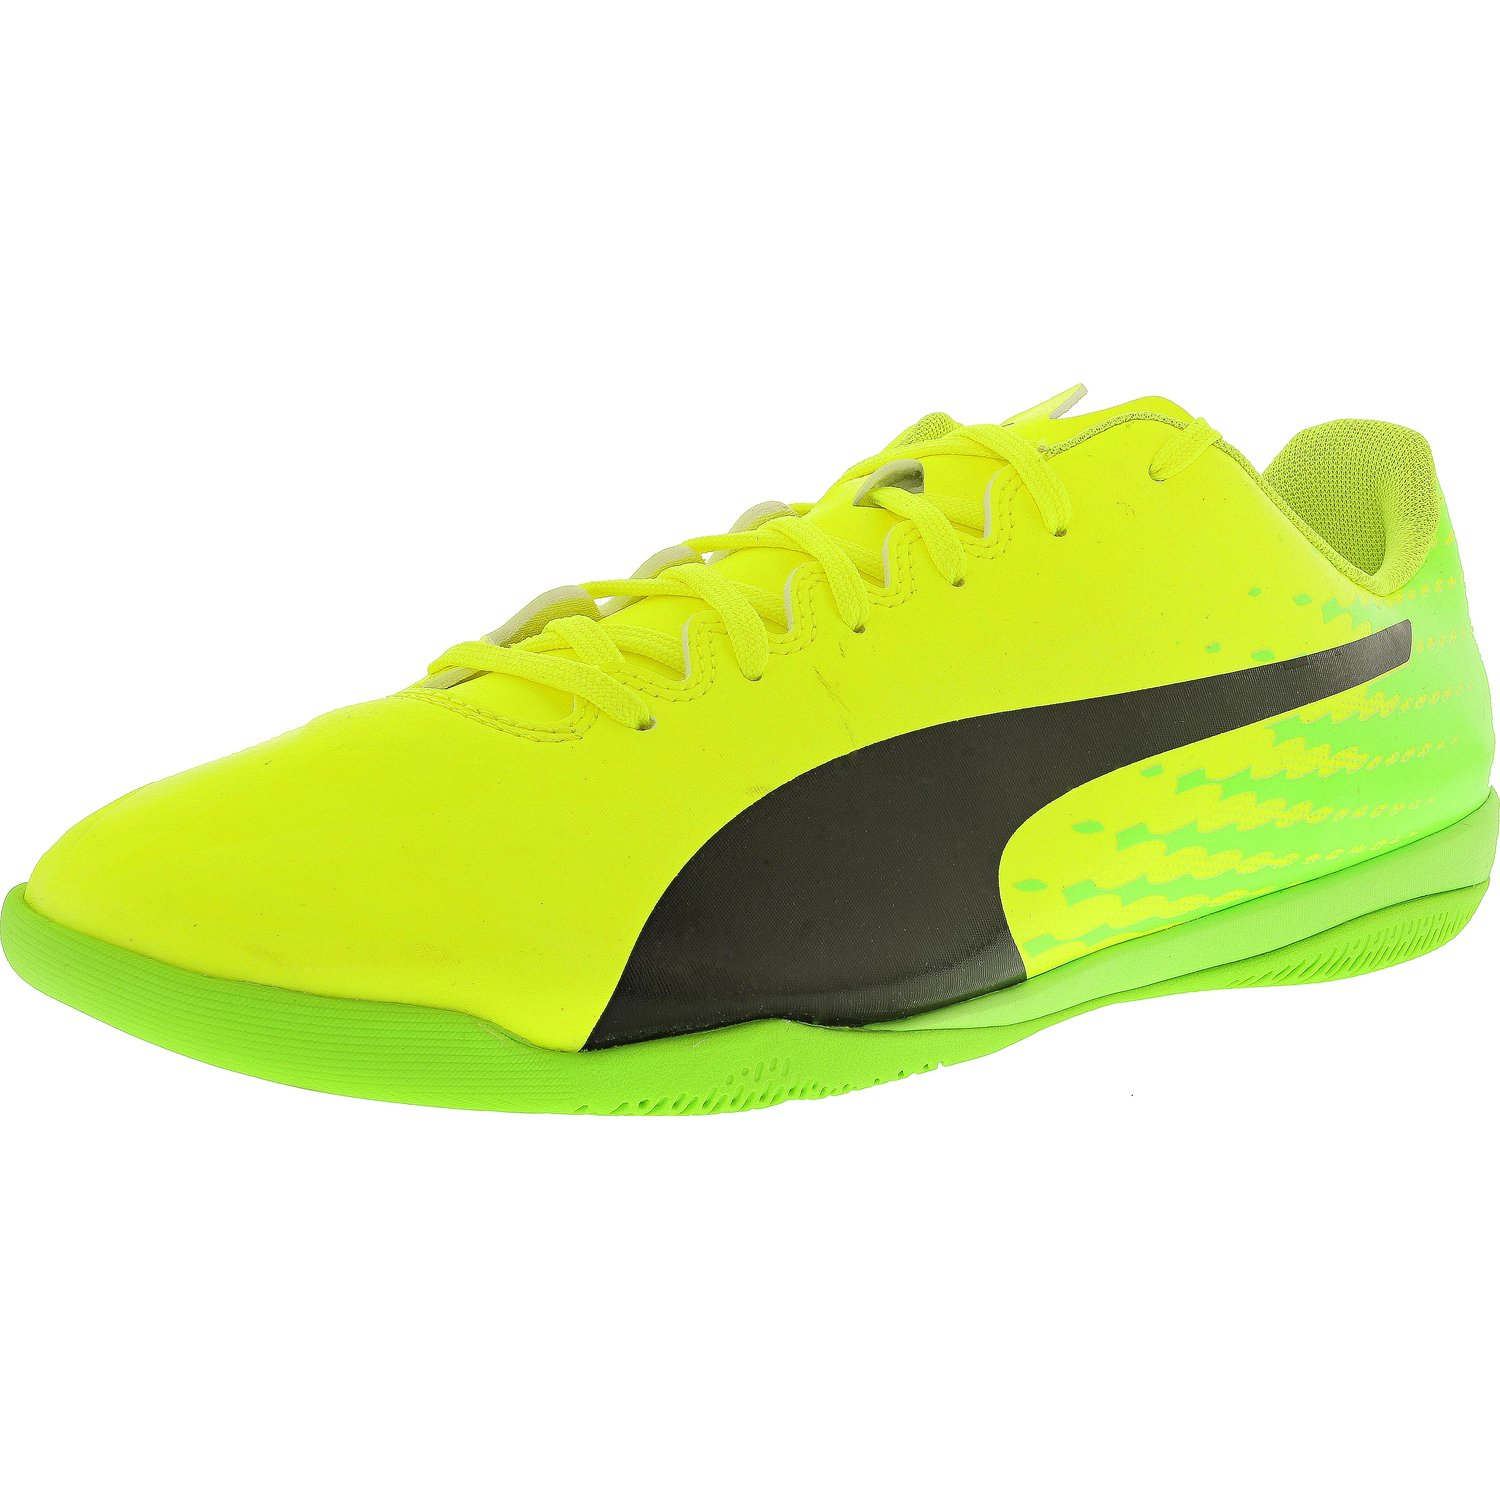 Puma Men's Evospeed 17.4 It Yellow   Black Green Ankle-High Indoor Court Shoe 12.5M by Puma